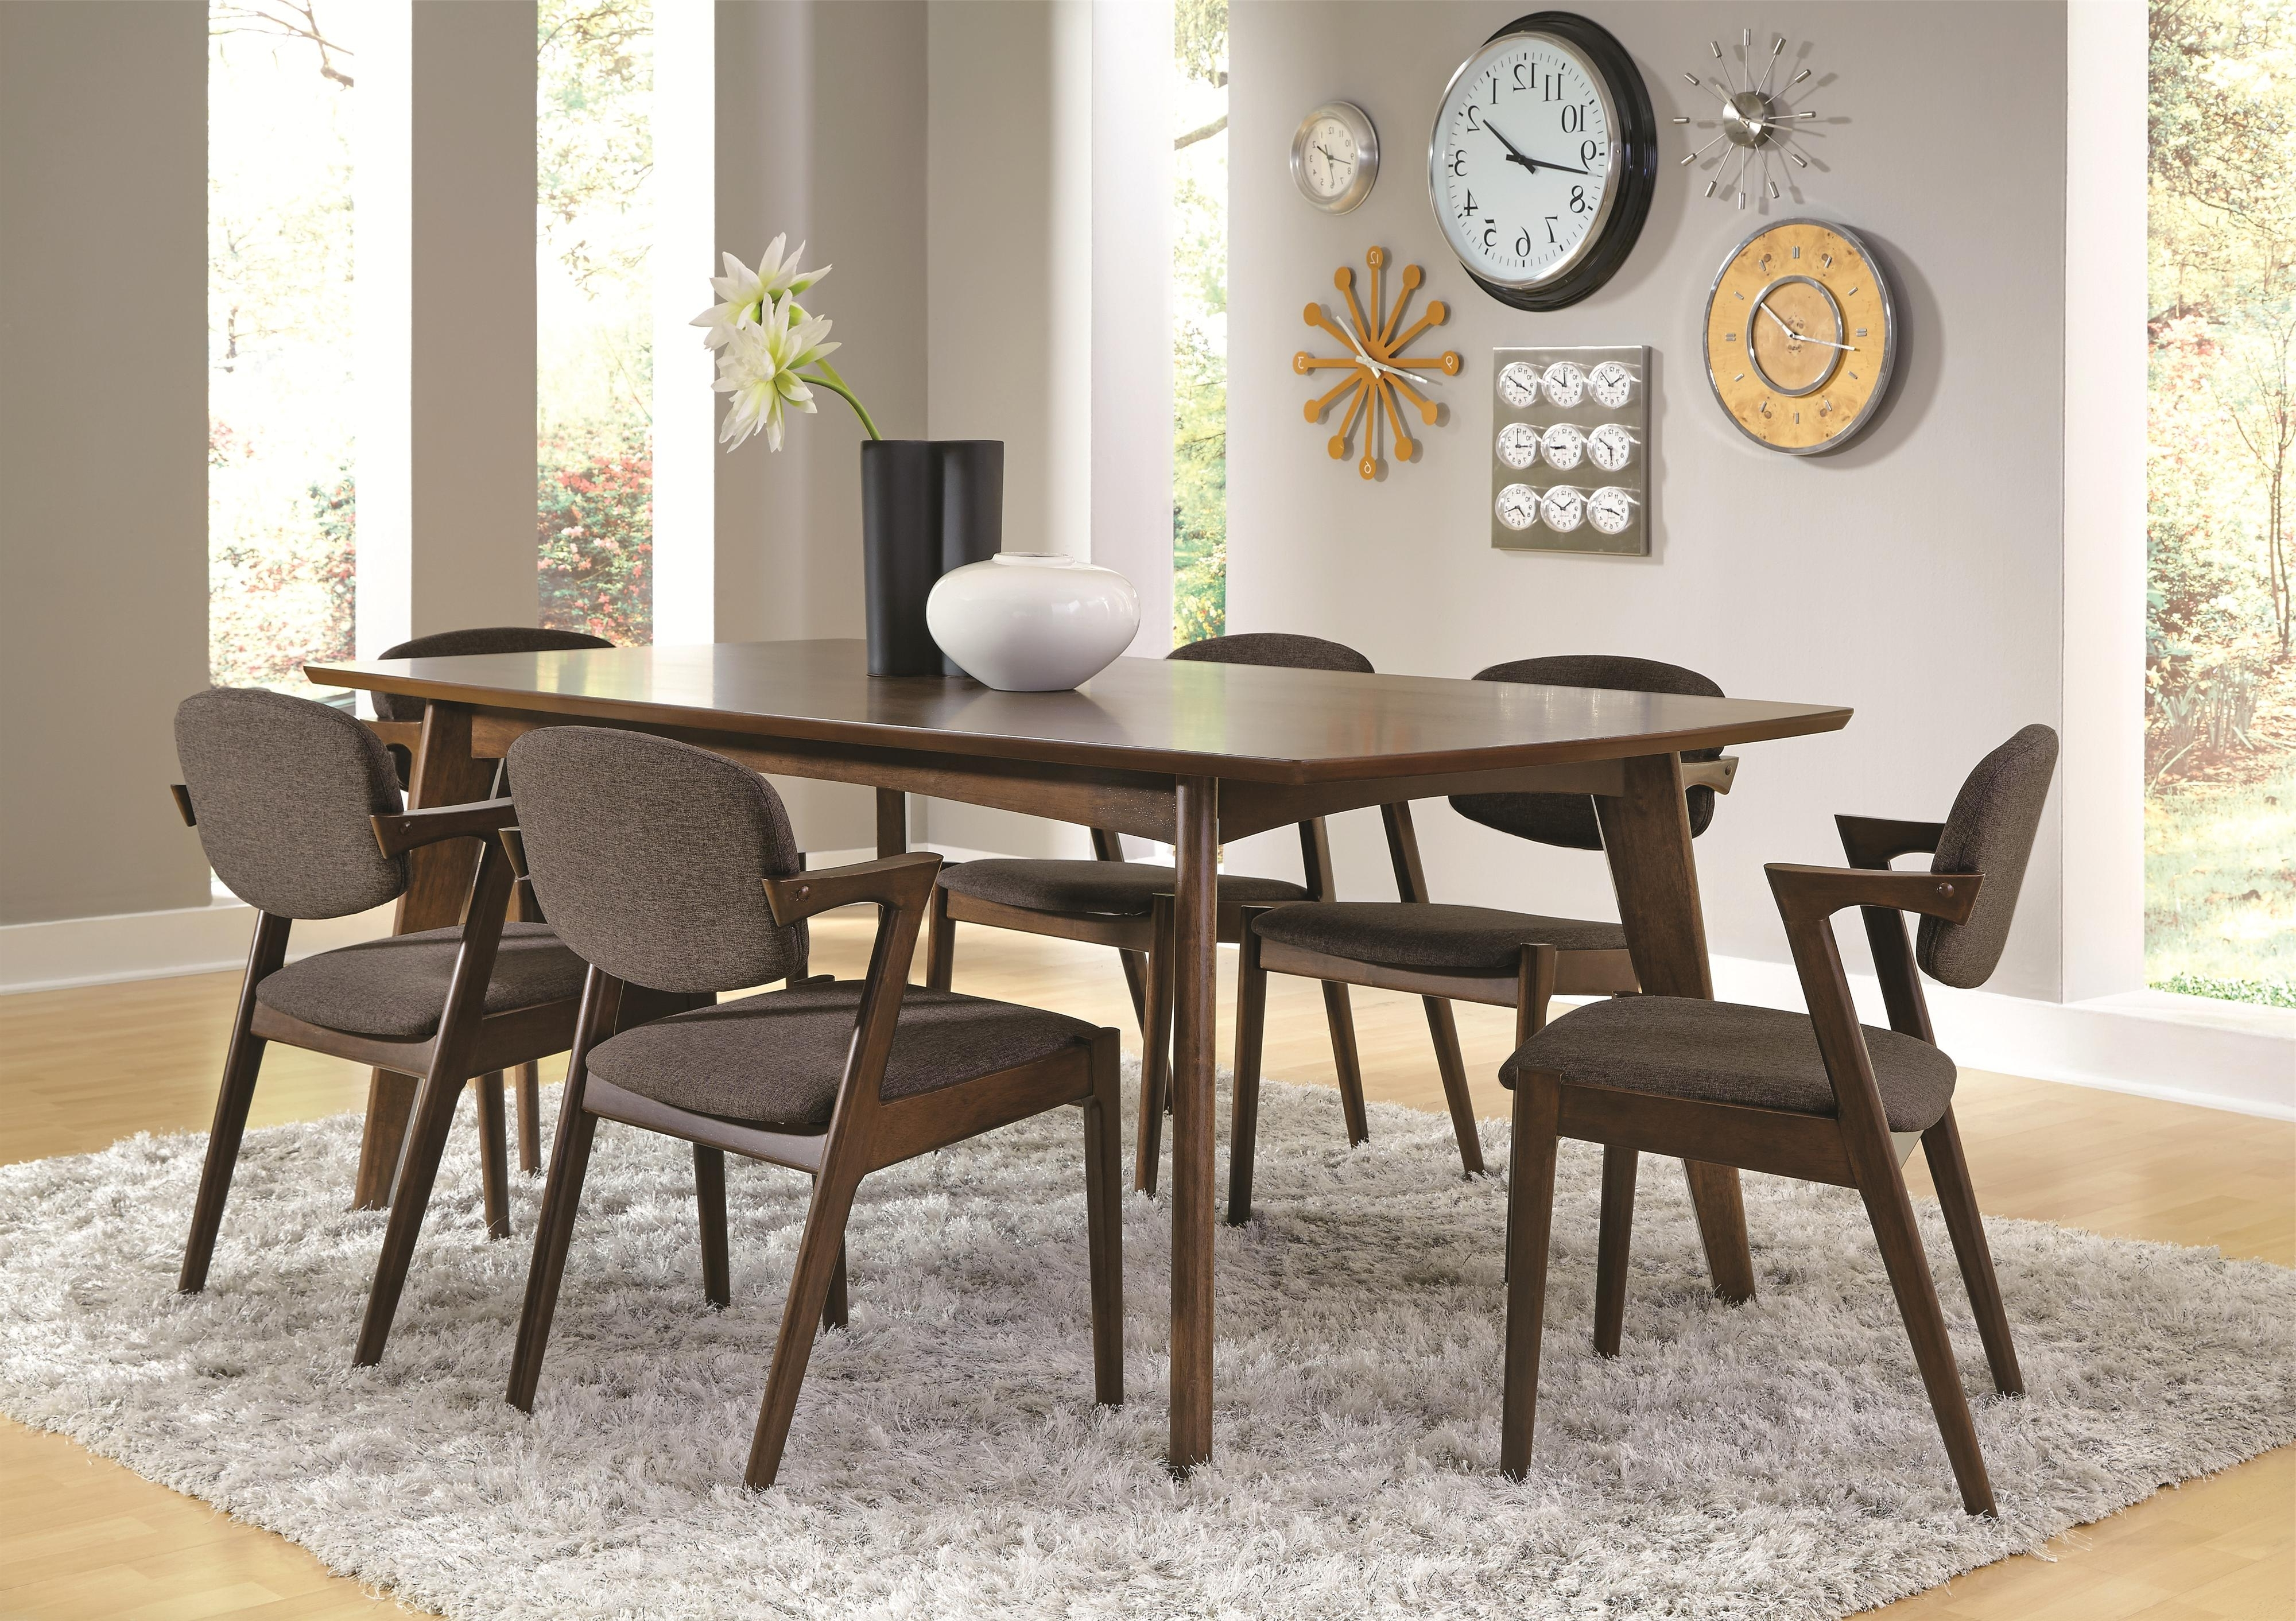 Value City Throughout Modern Dining Table And Chairs (View 23 of 25)